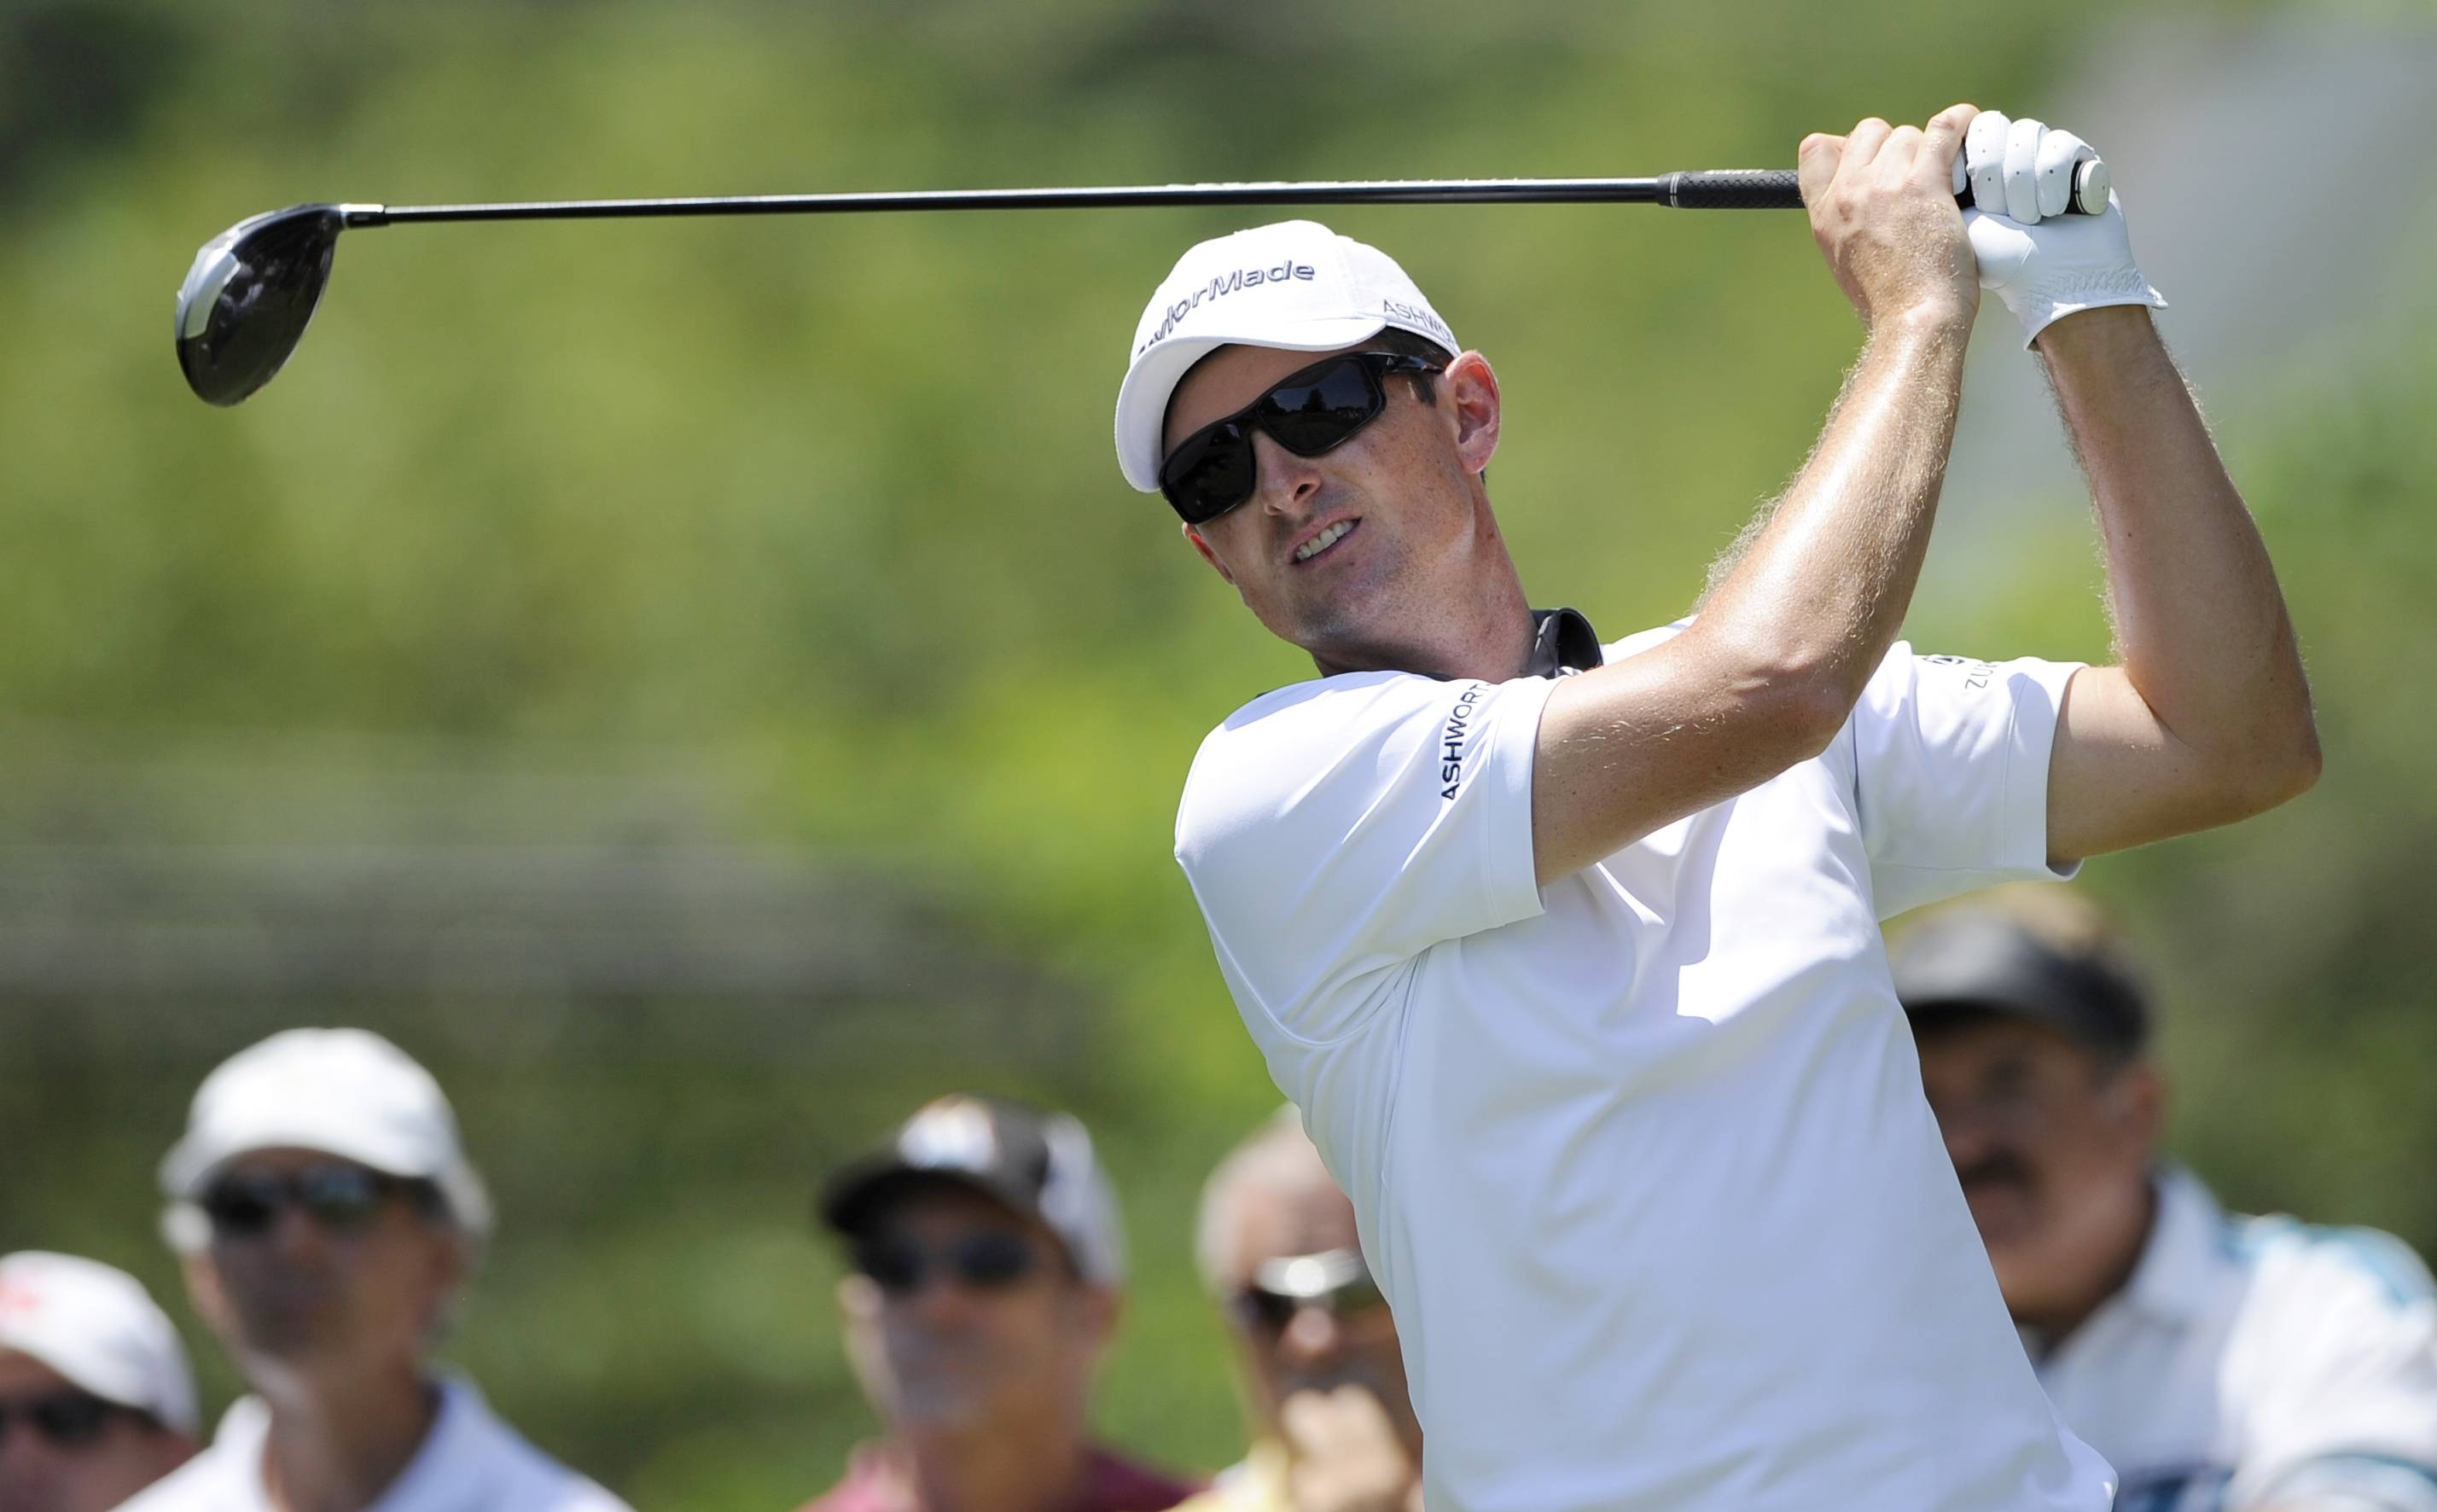 Justin Rose, of England, watches his tee shot on the third tee during the final round of the Quicken Loans National golf tournament, Sunday, June 29, 2014, in Bethesda, Md.